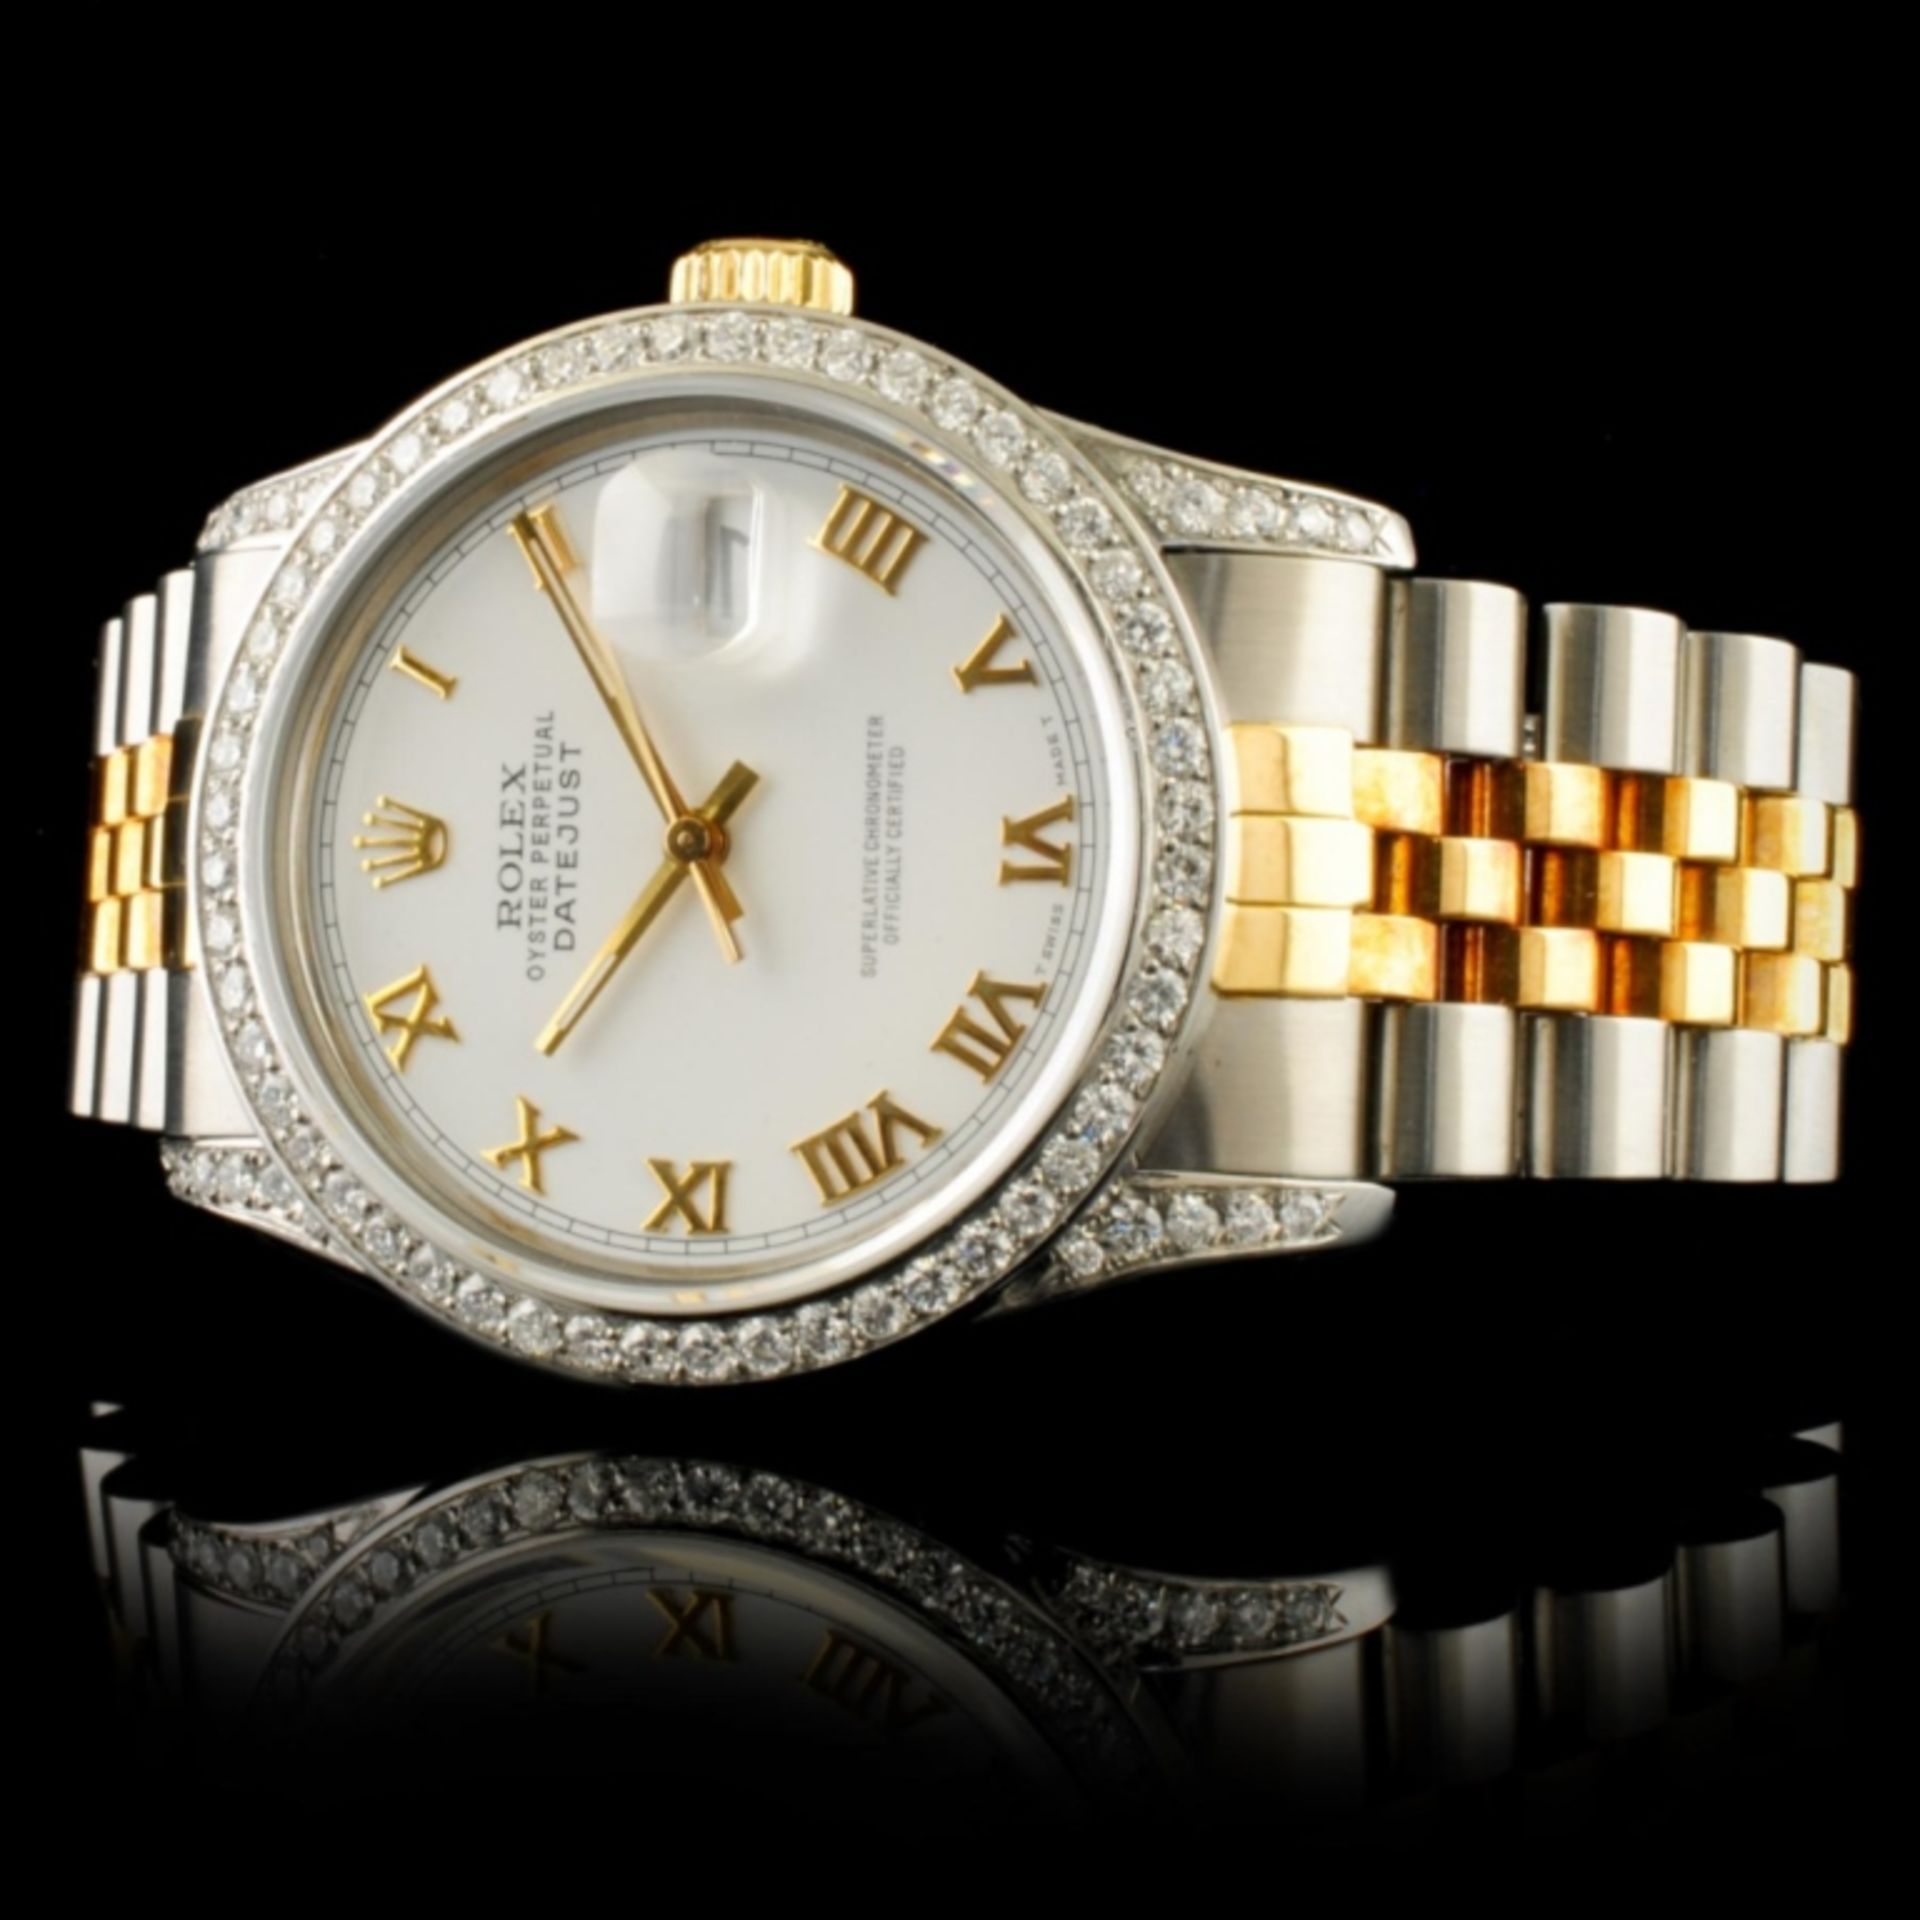 Rolex DateJust 1.50ctw Diamond 36MM Wristwatch - Image 2 of 5